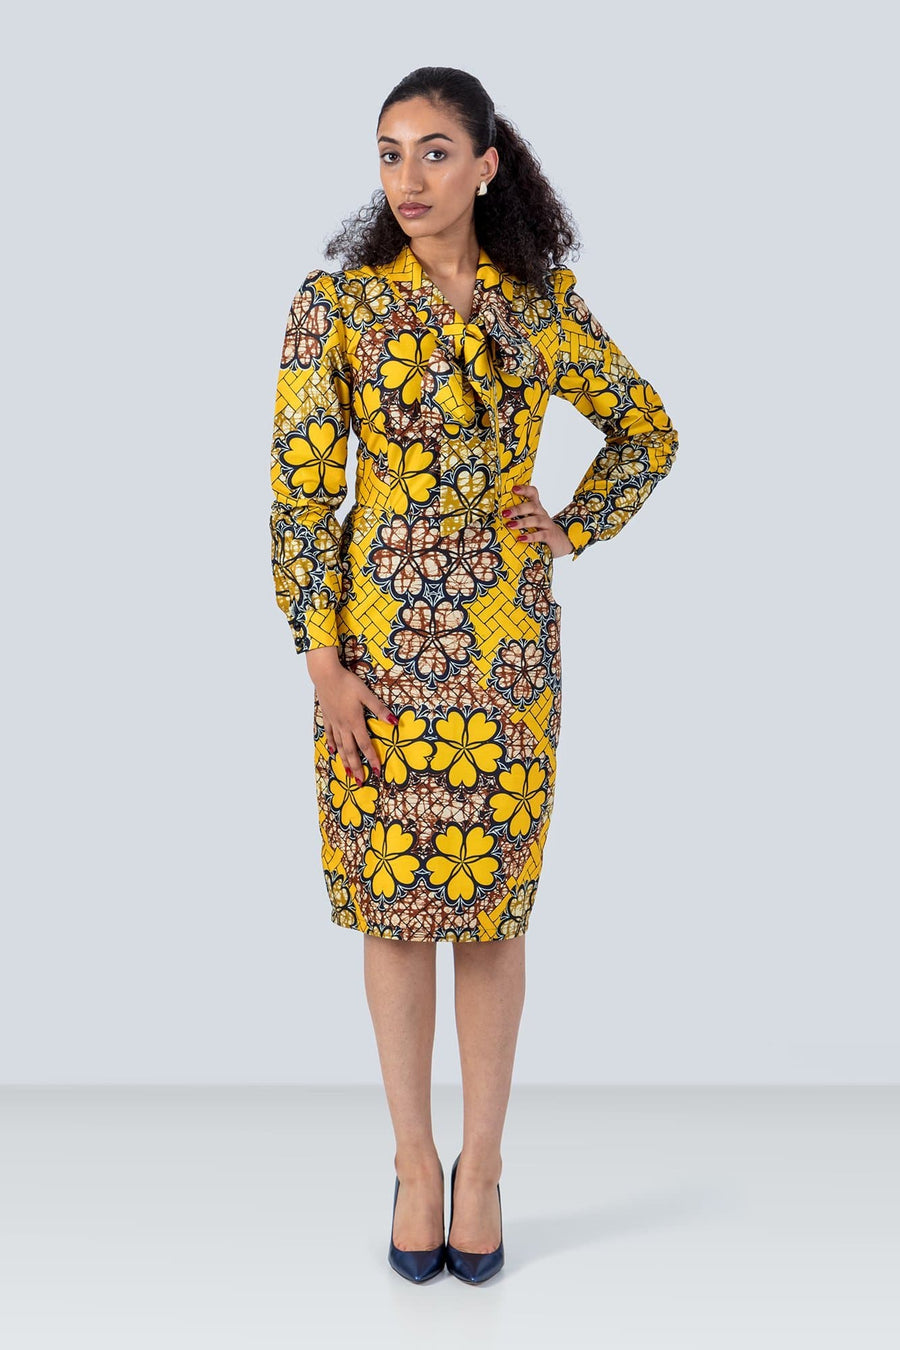 Sika'a Long Sleeves Neck-tie Floral African Print Dress